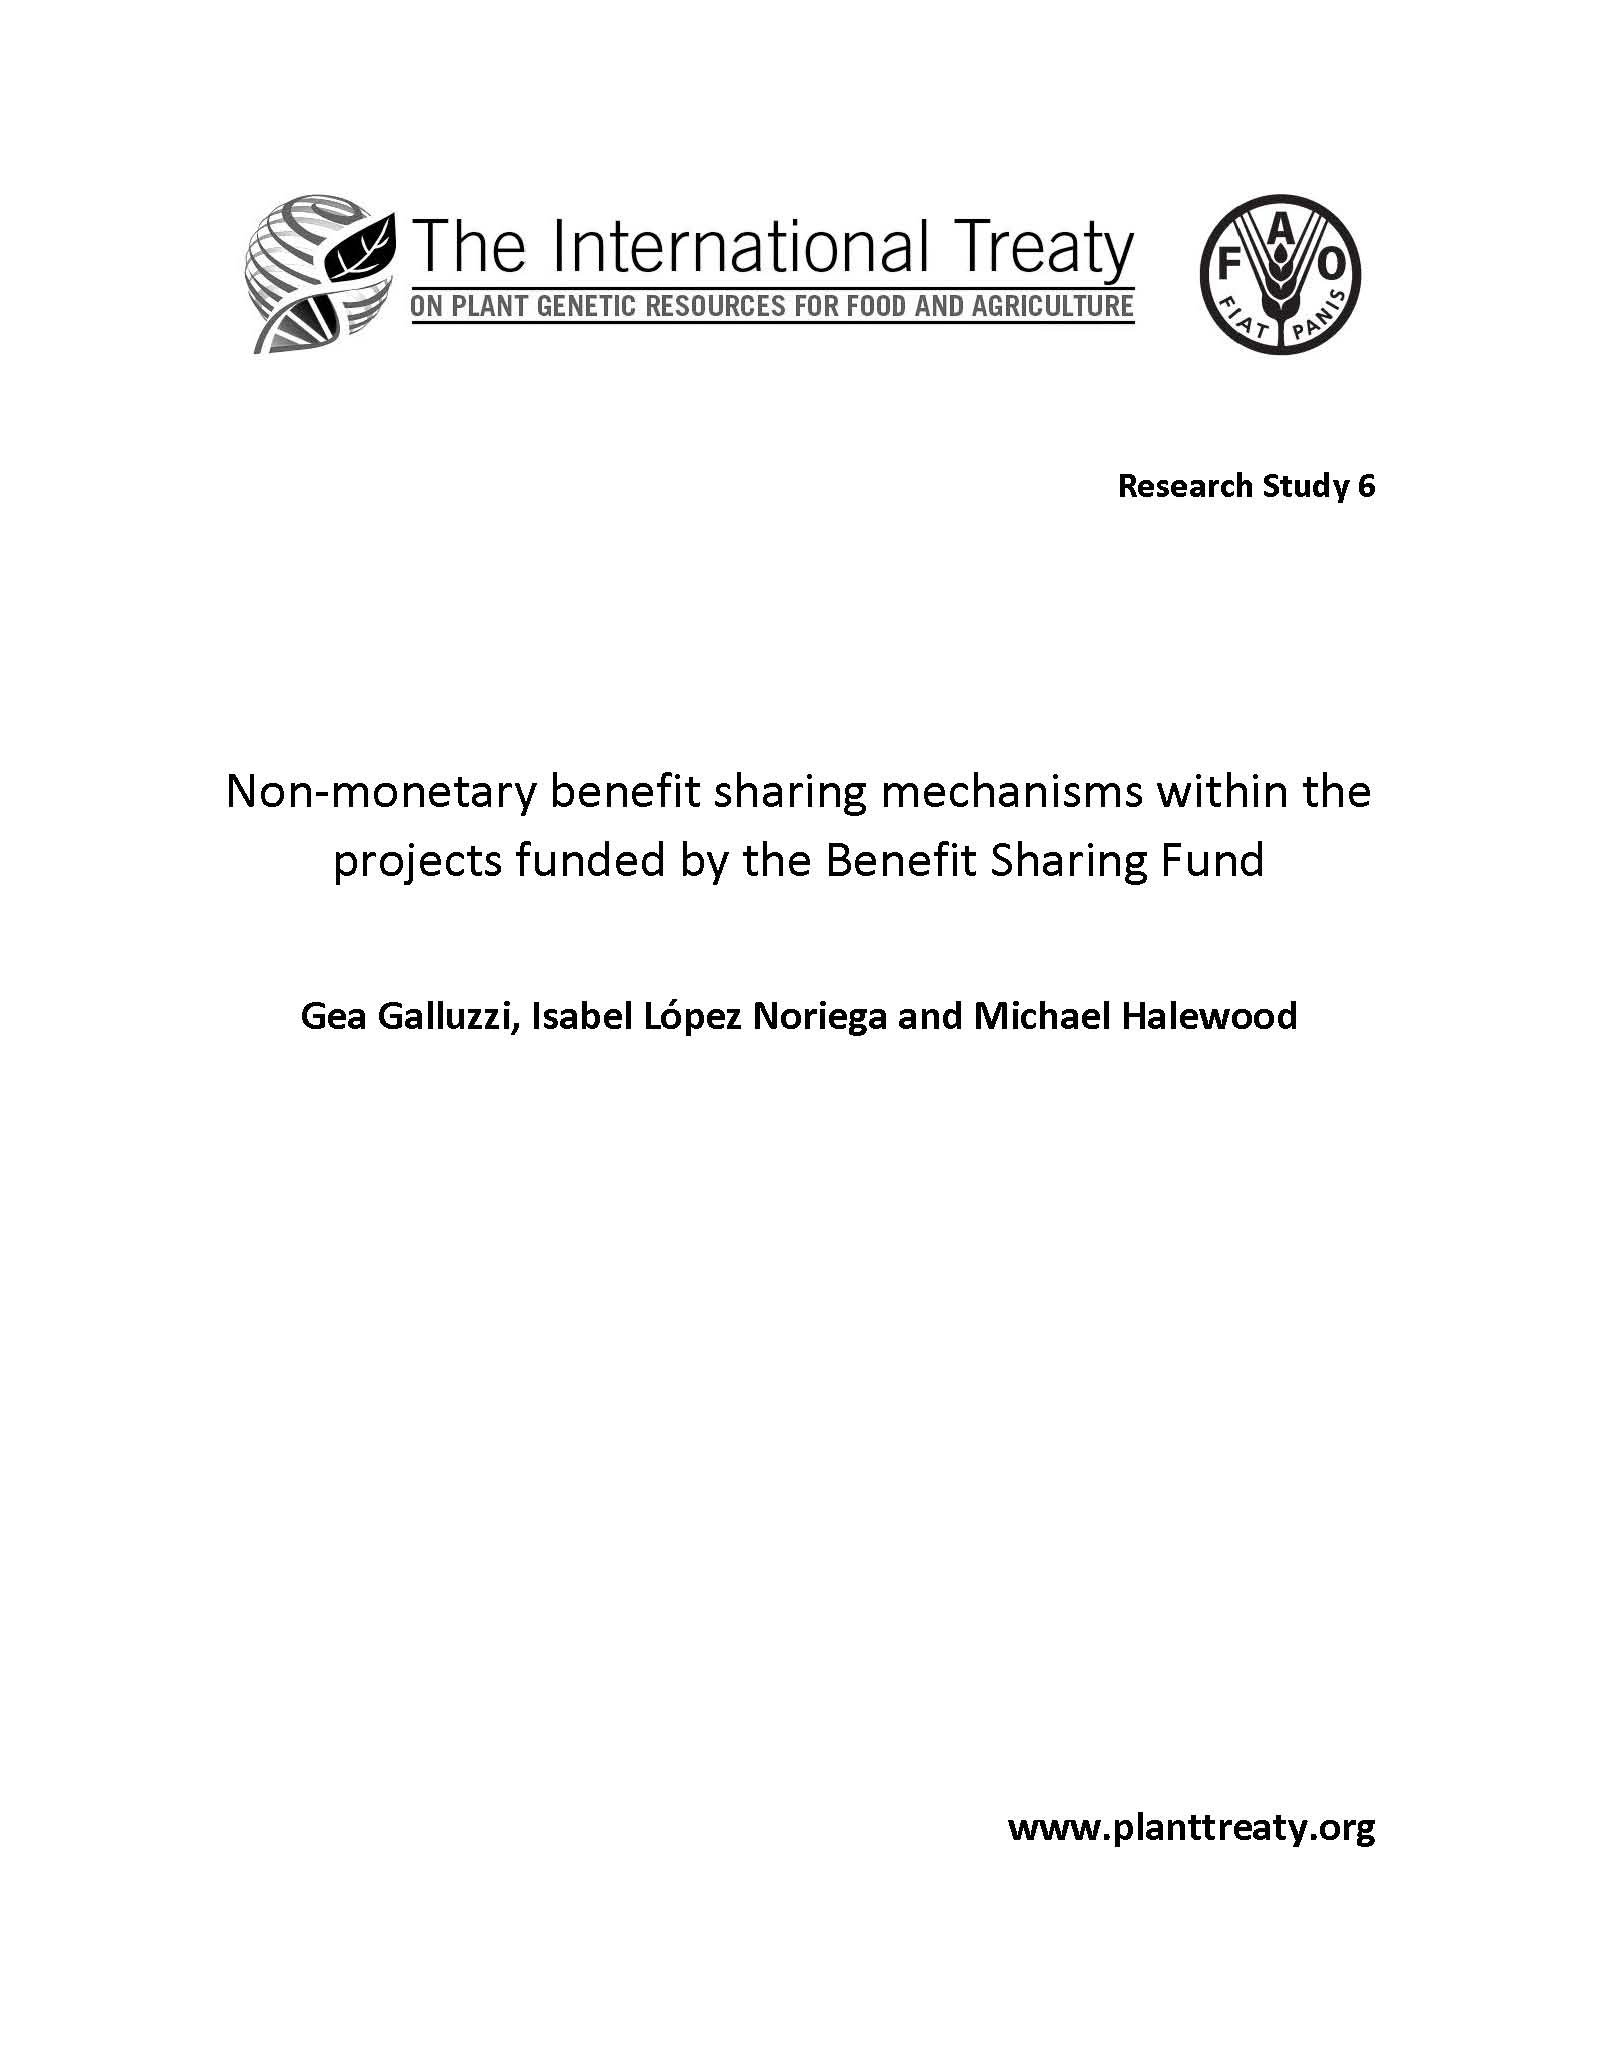 Non-monetary benefit sharing mechanisms within the projects funded